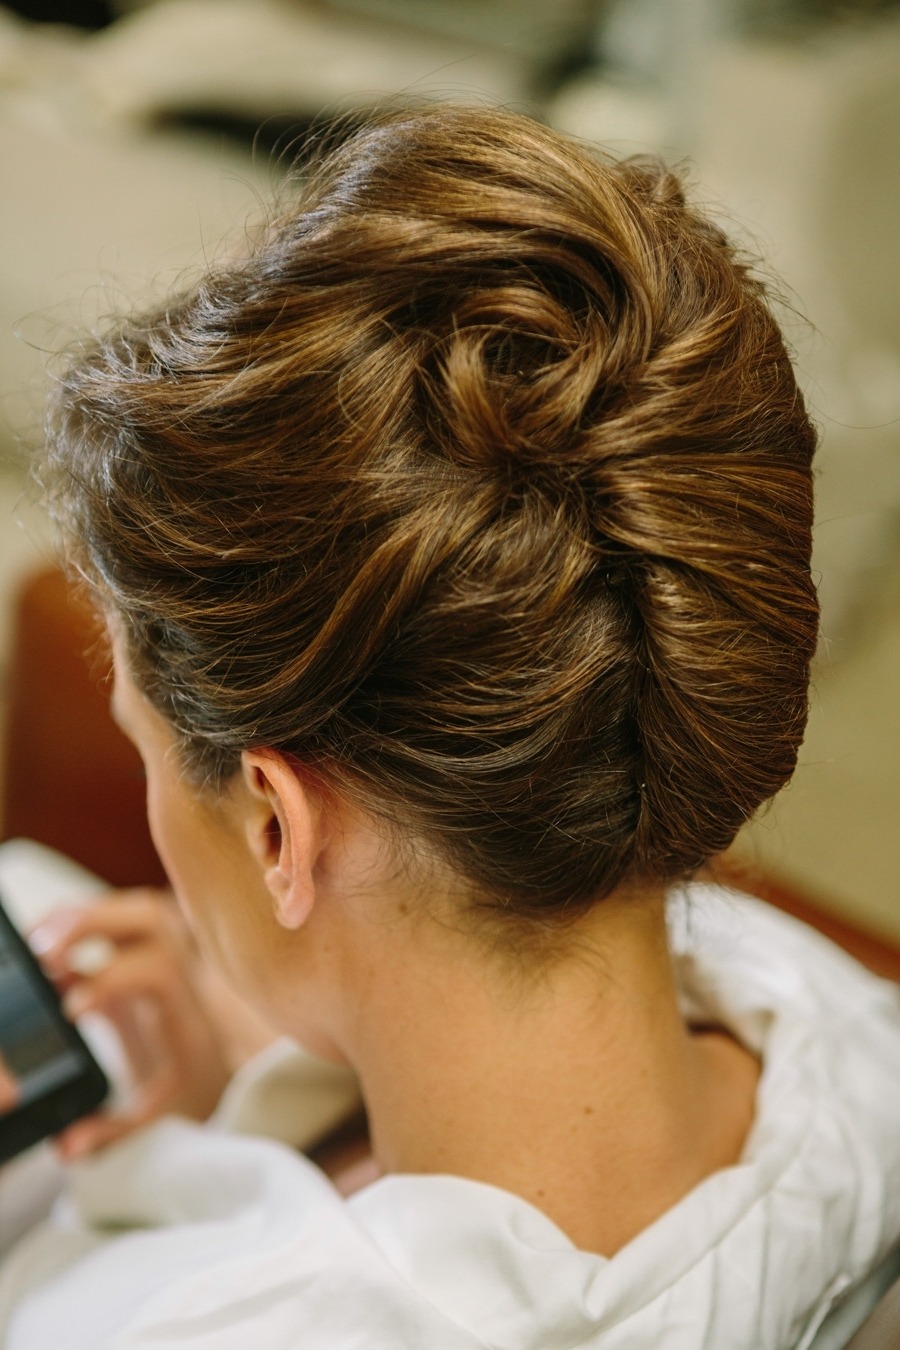 Elegant Healdsburg Wedding At Barndiva | French Twists, Elegant And 21St With French Twist Updo Hairstyles For Medium Hair (View 7 of 15)